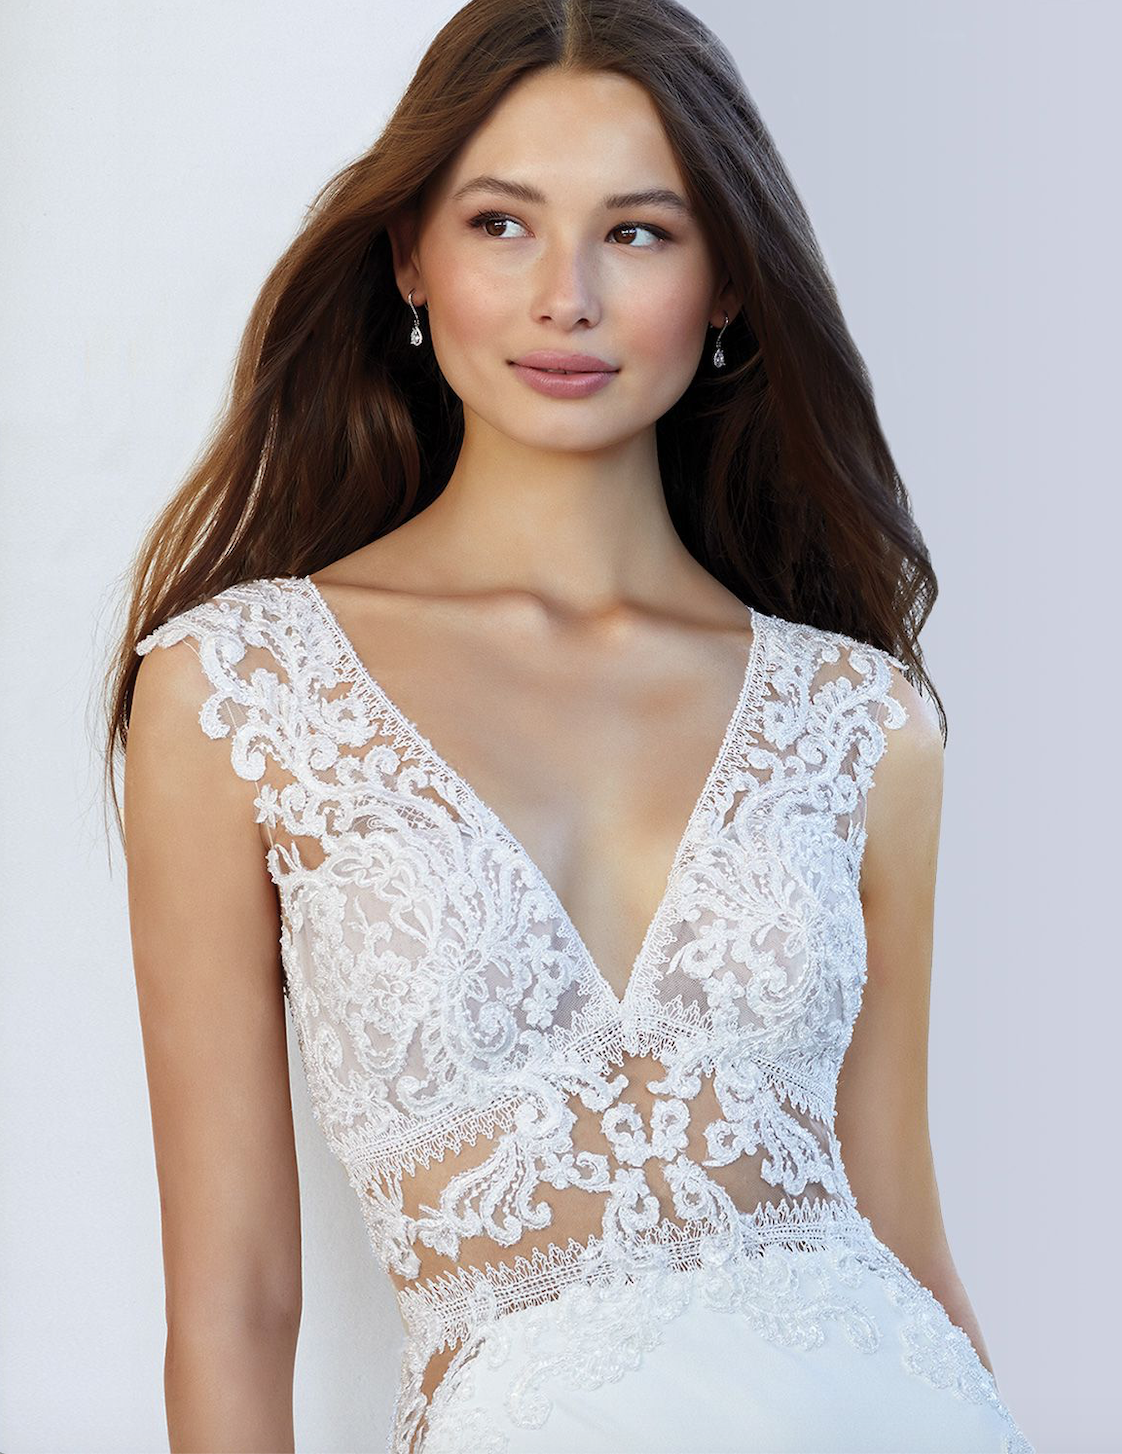 Model wearing white Justin Alexander dress